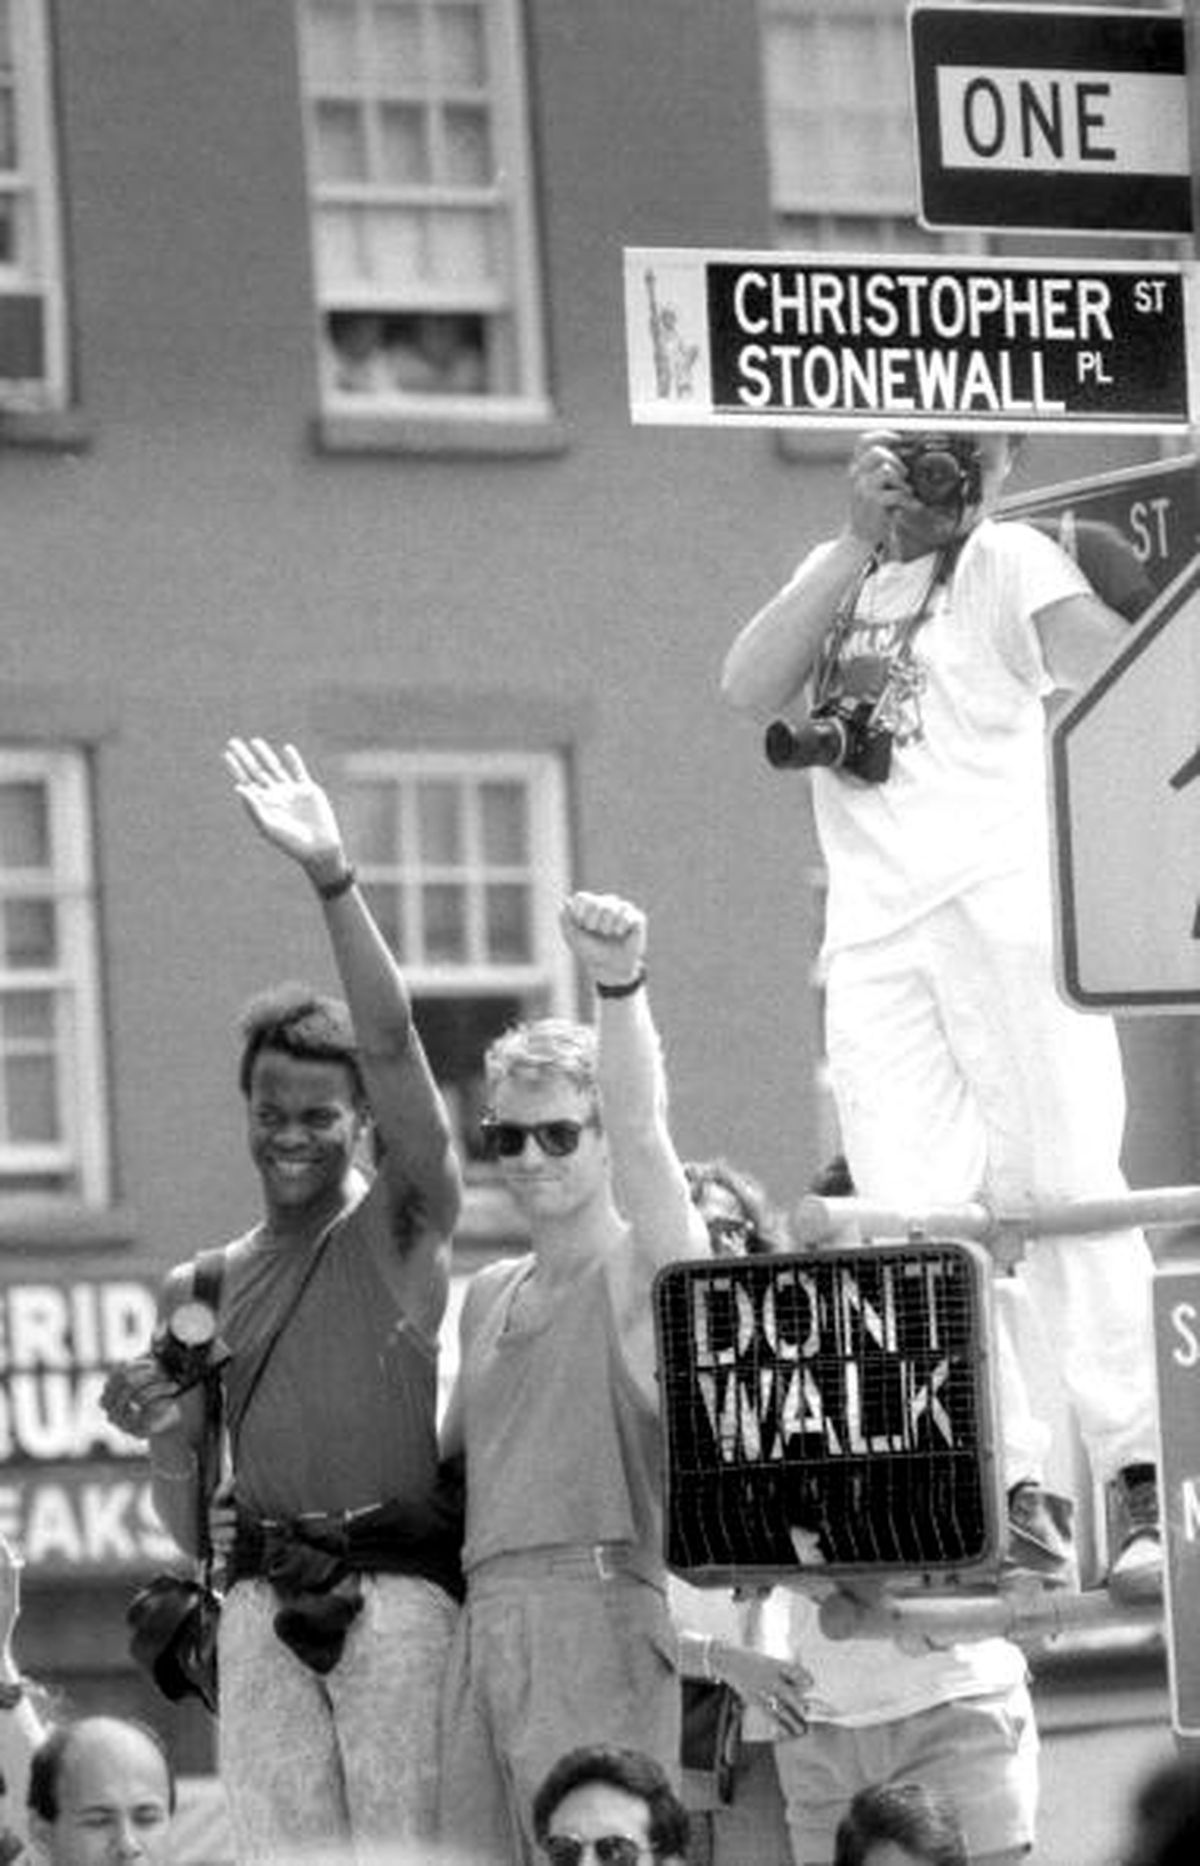 LGBTQ advocates show their support on the anniversary of the Stonewall Riots.